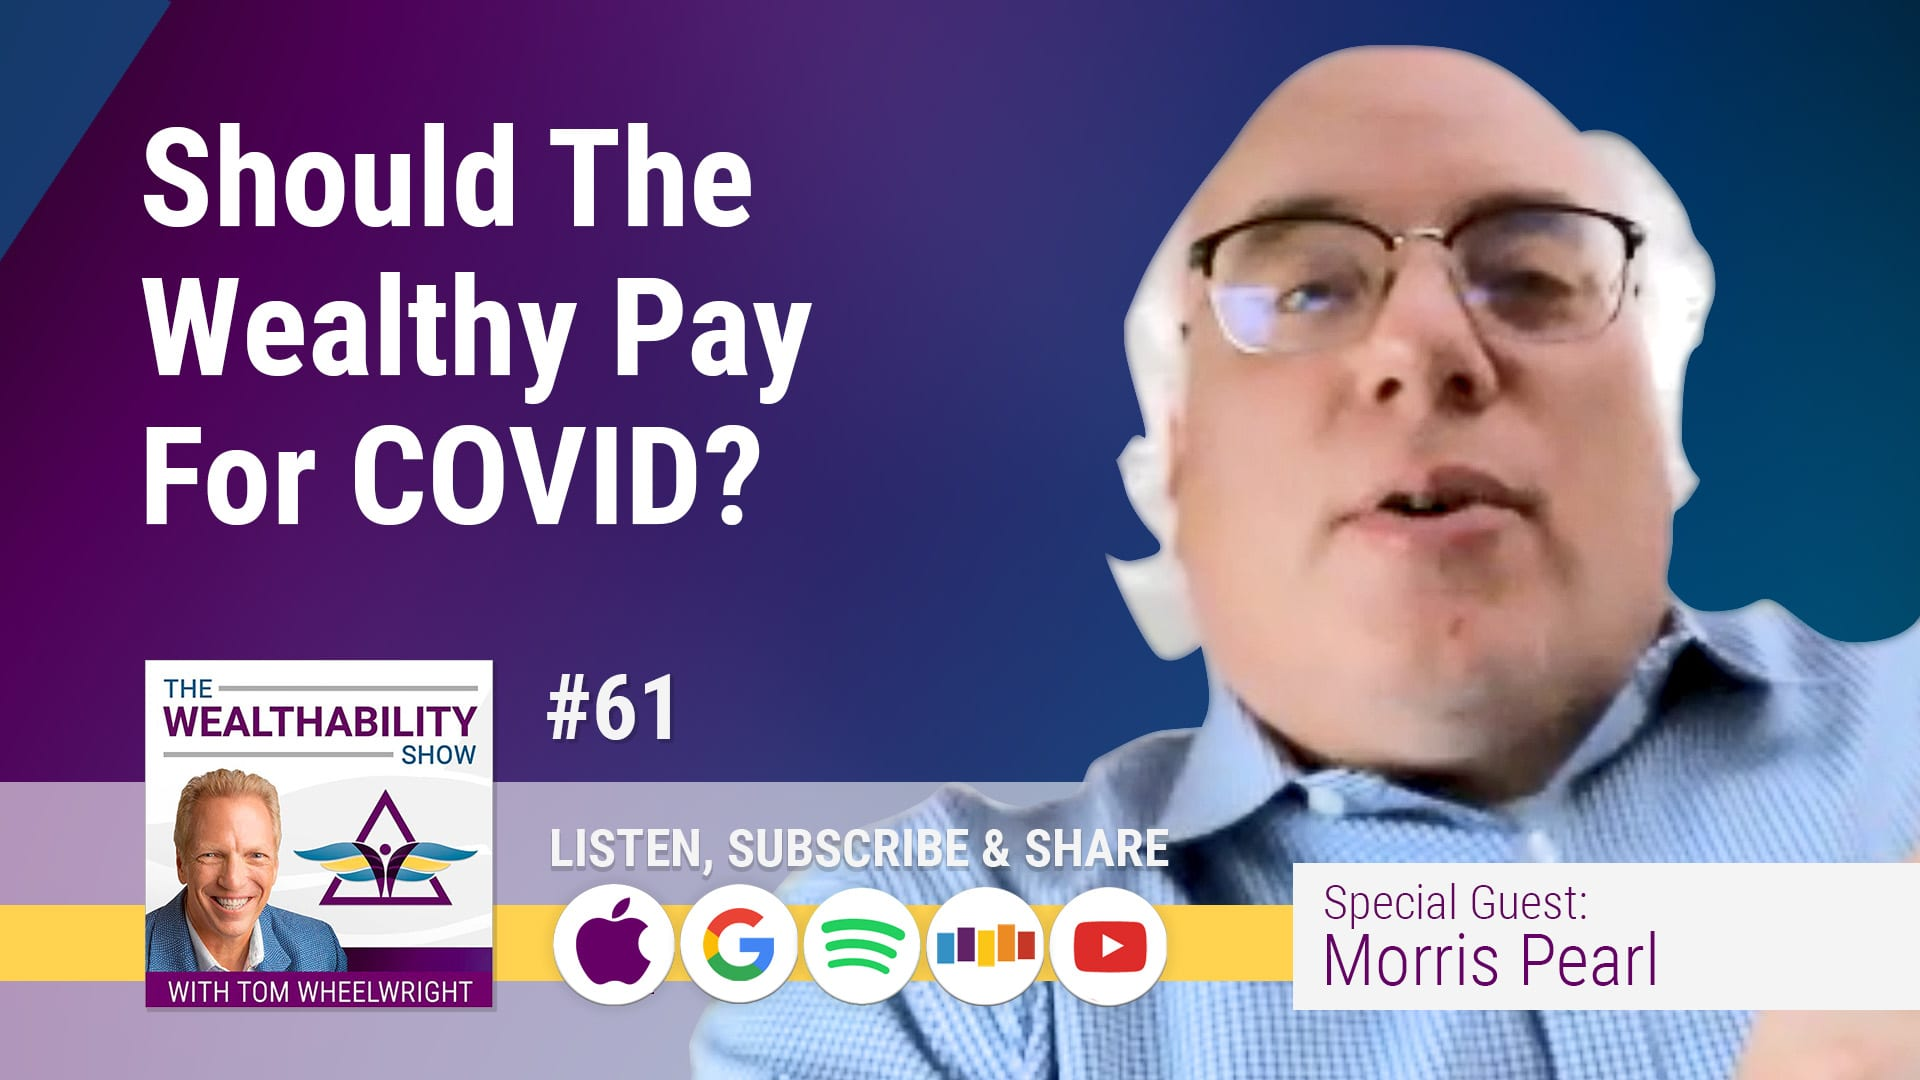 Should The Wealthy Pay for COVID - Morris Pearl